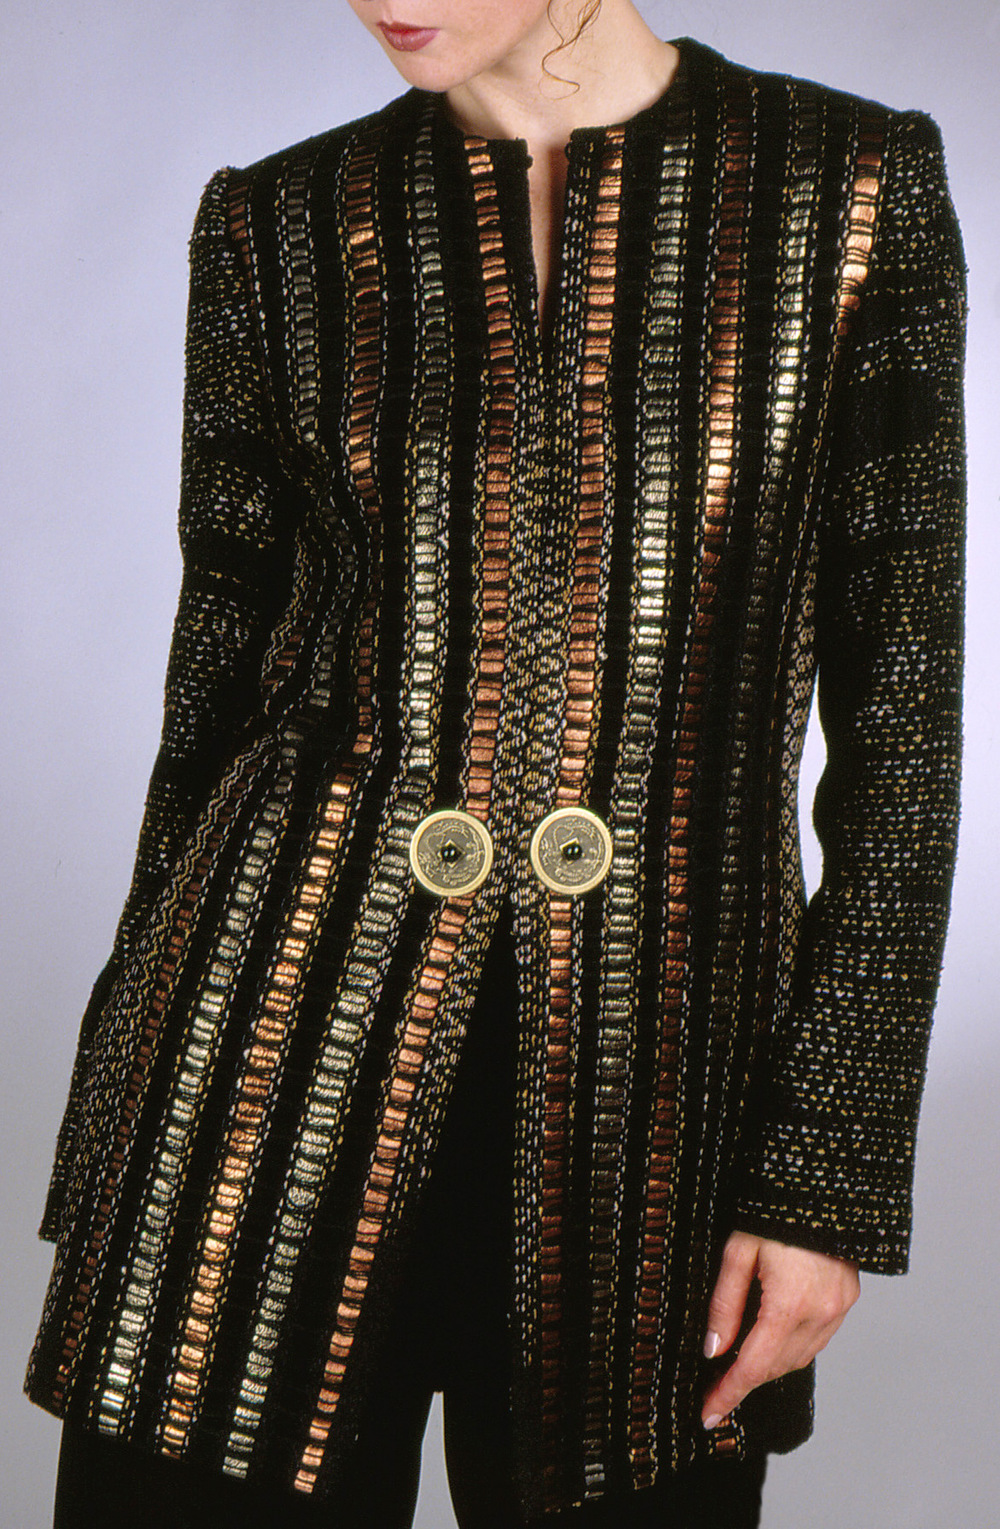 Handwoven Jacket, Business Apparel, Kathleen Weir-West 6.jpg